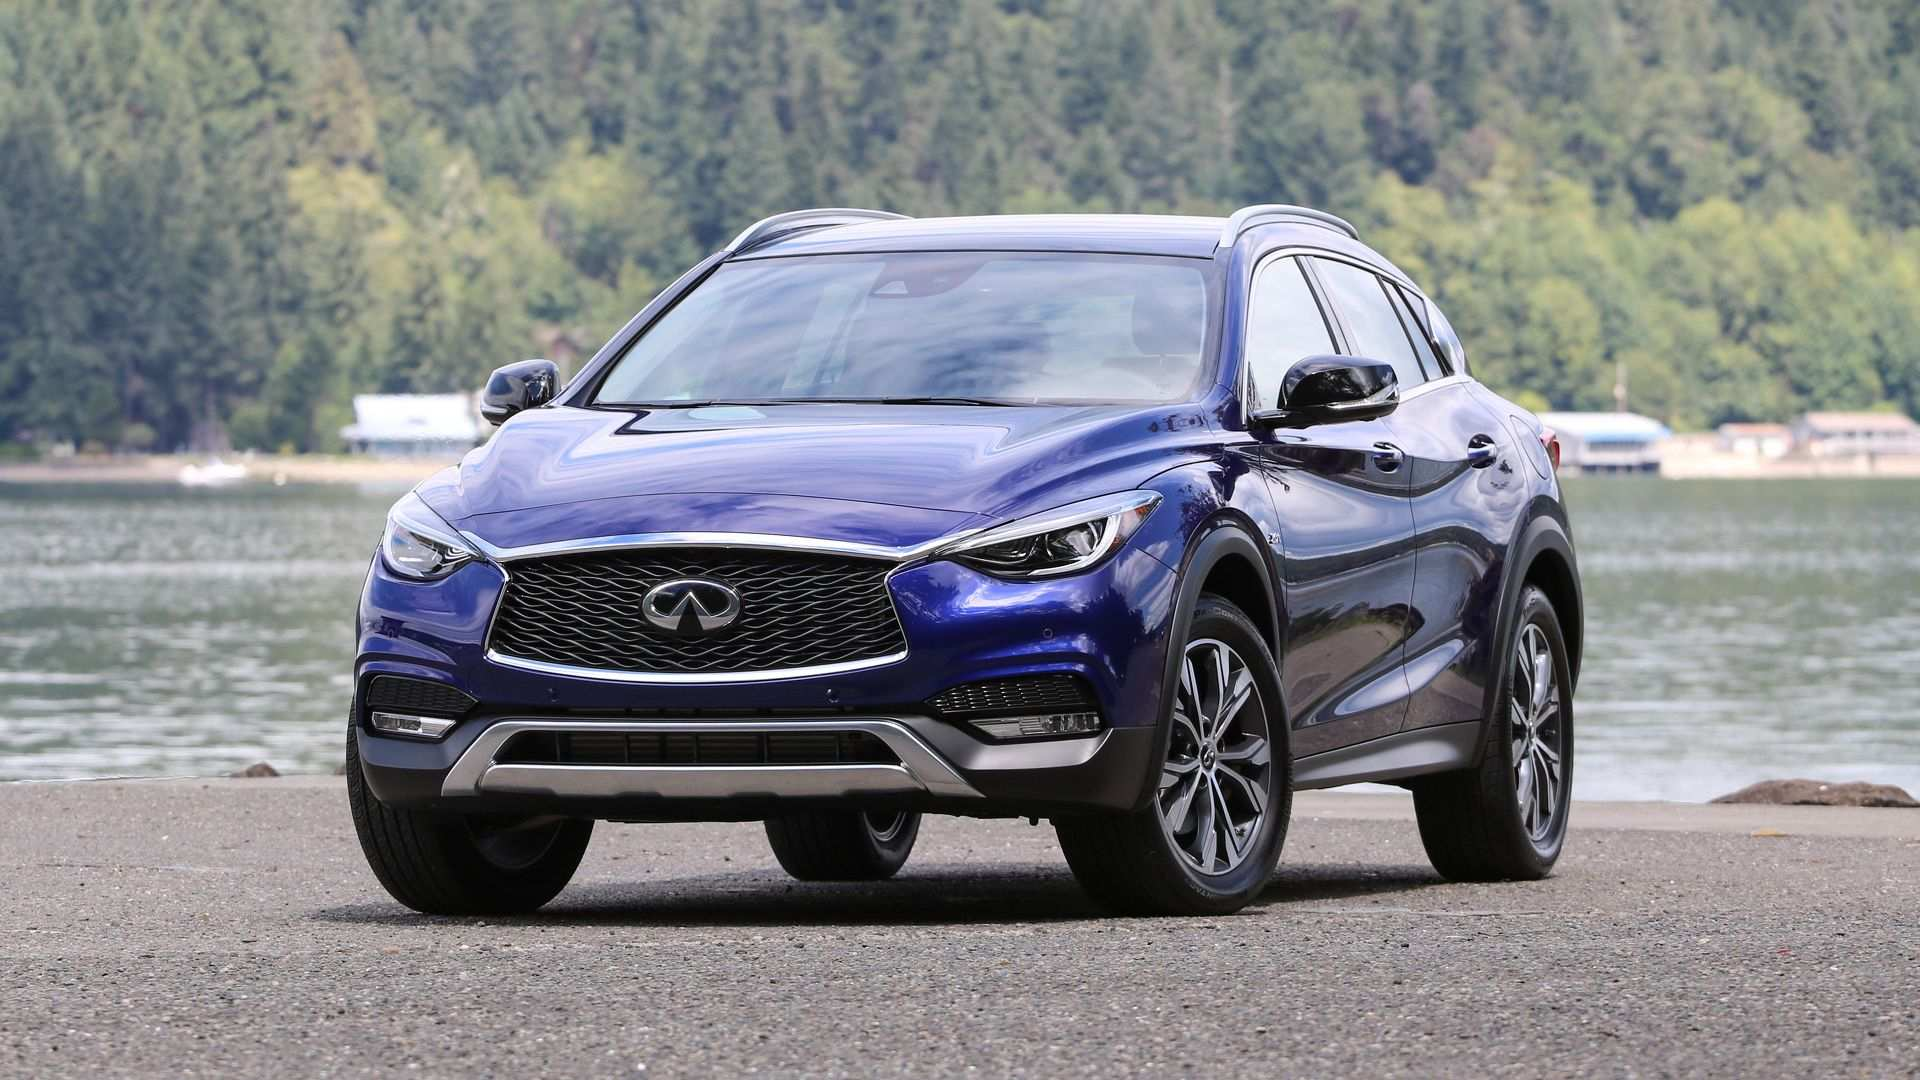 84 Best Review 2020 Infiniti Qx30 Dimensions Rumors for 2020 Infiniti Qx30 Dimensions